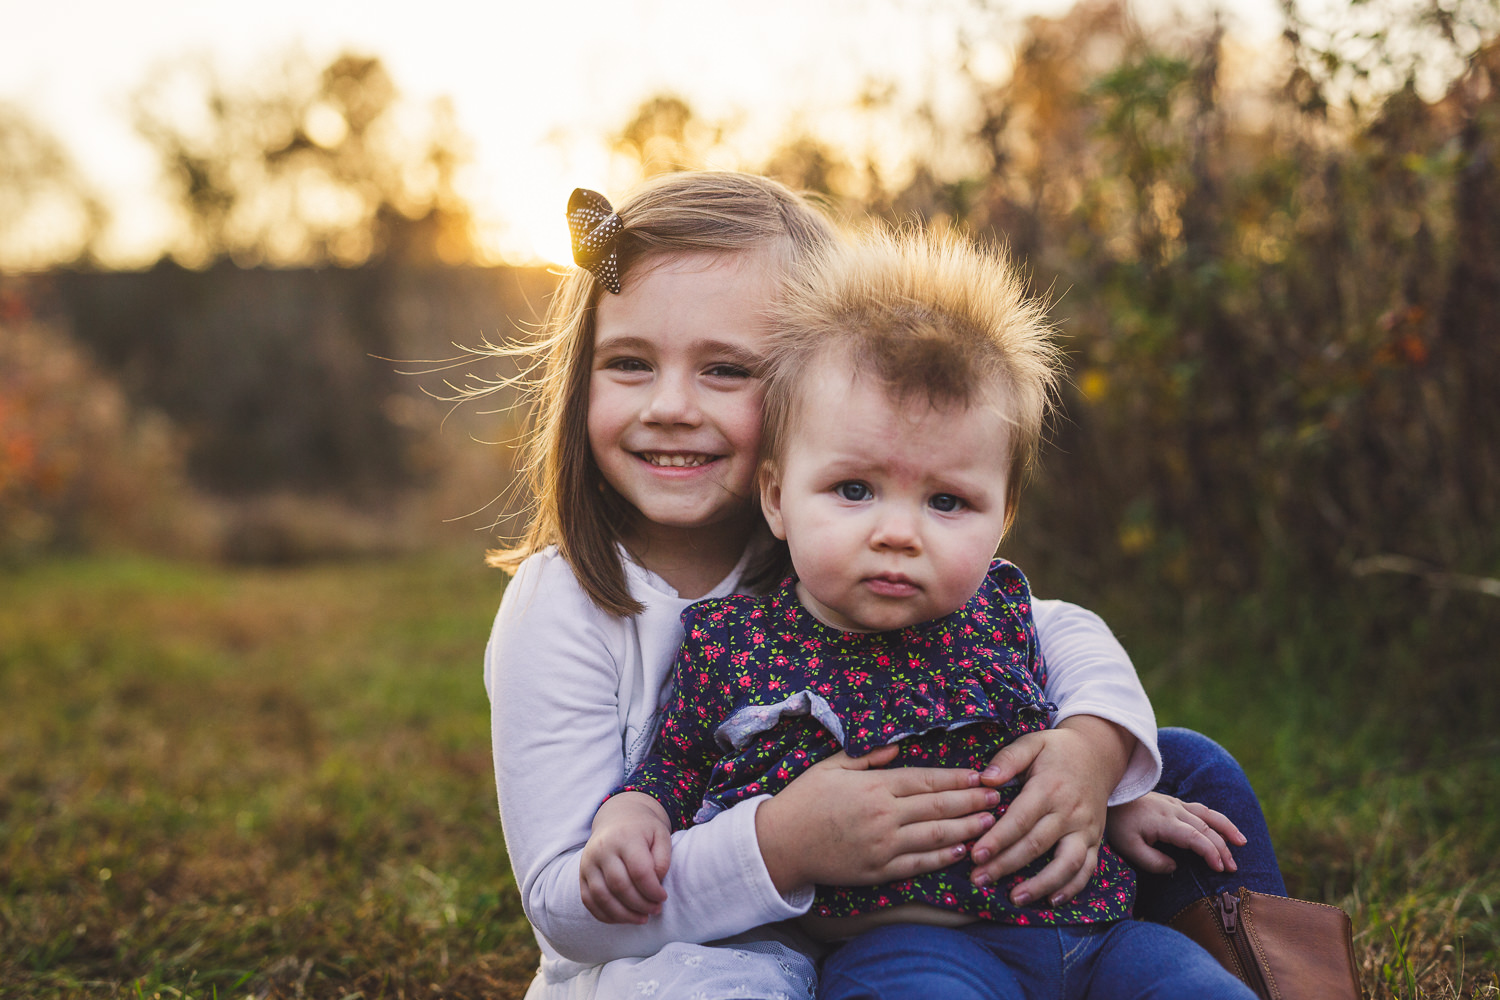 thomas wywrot photography nashville family photographer tennessee tn pictures photos newborn baby infant brentwood franklin sisters hugging sunset field outdoor fall